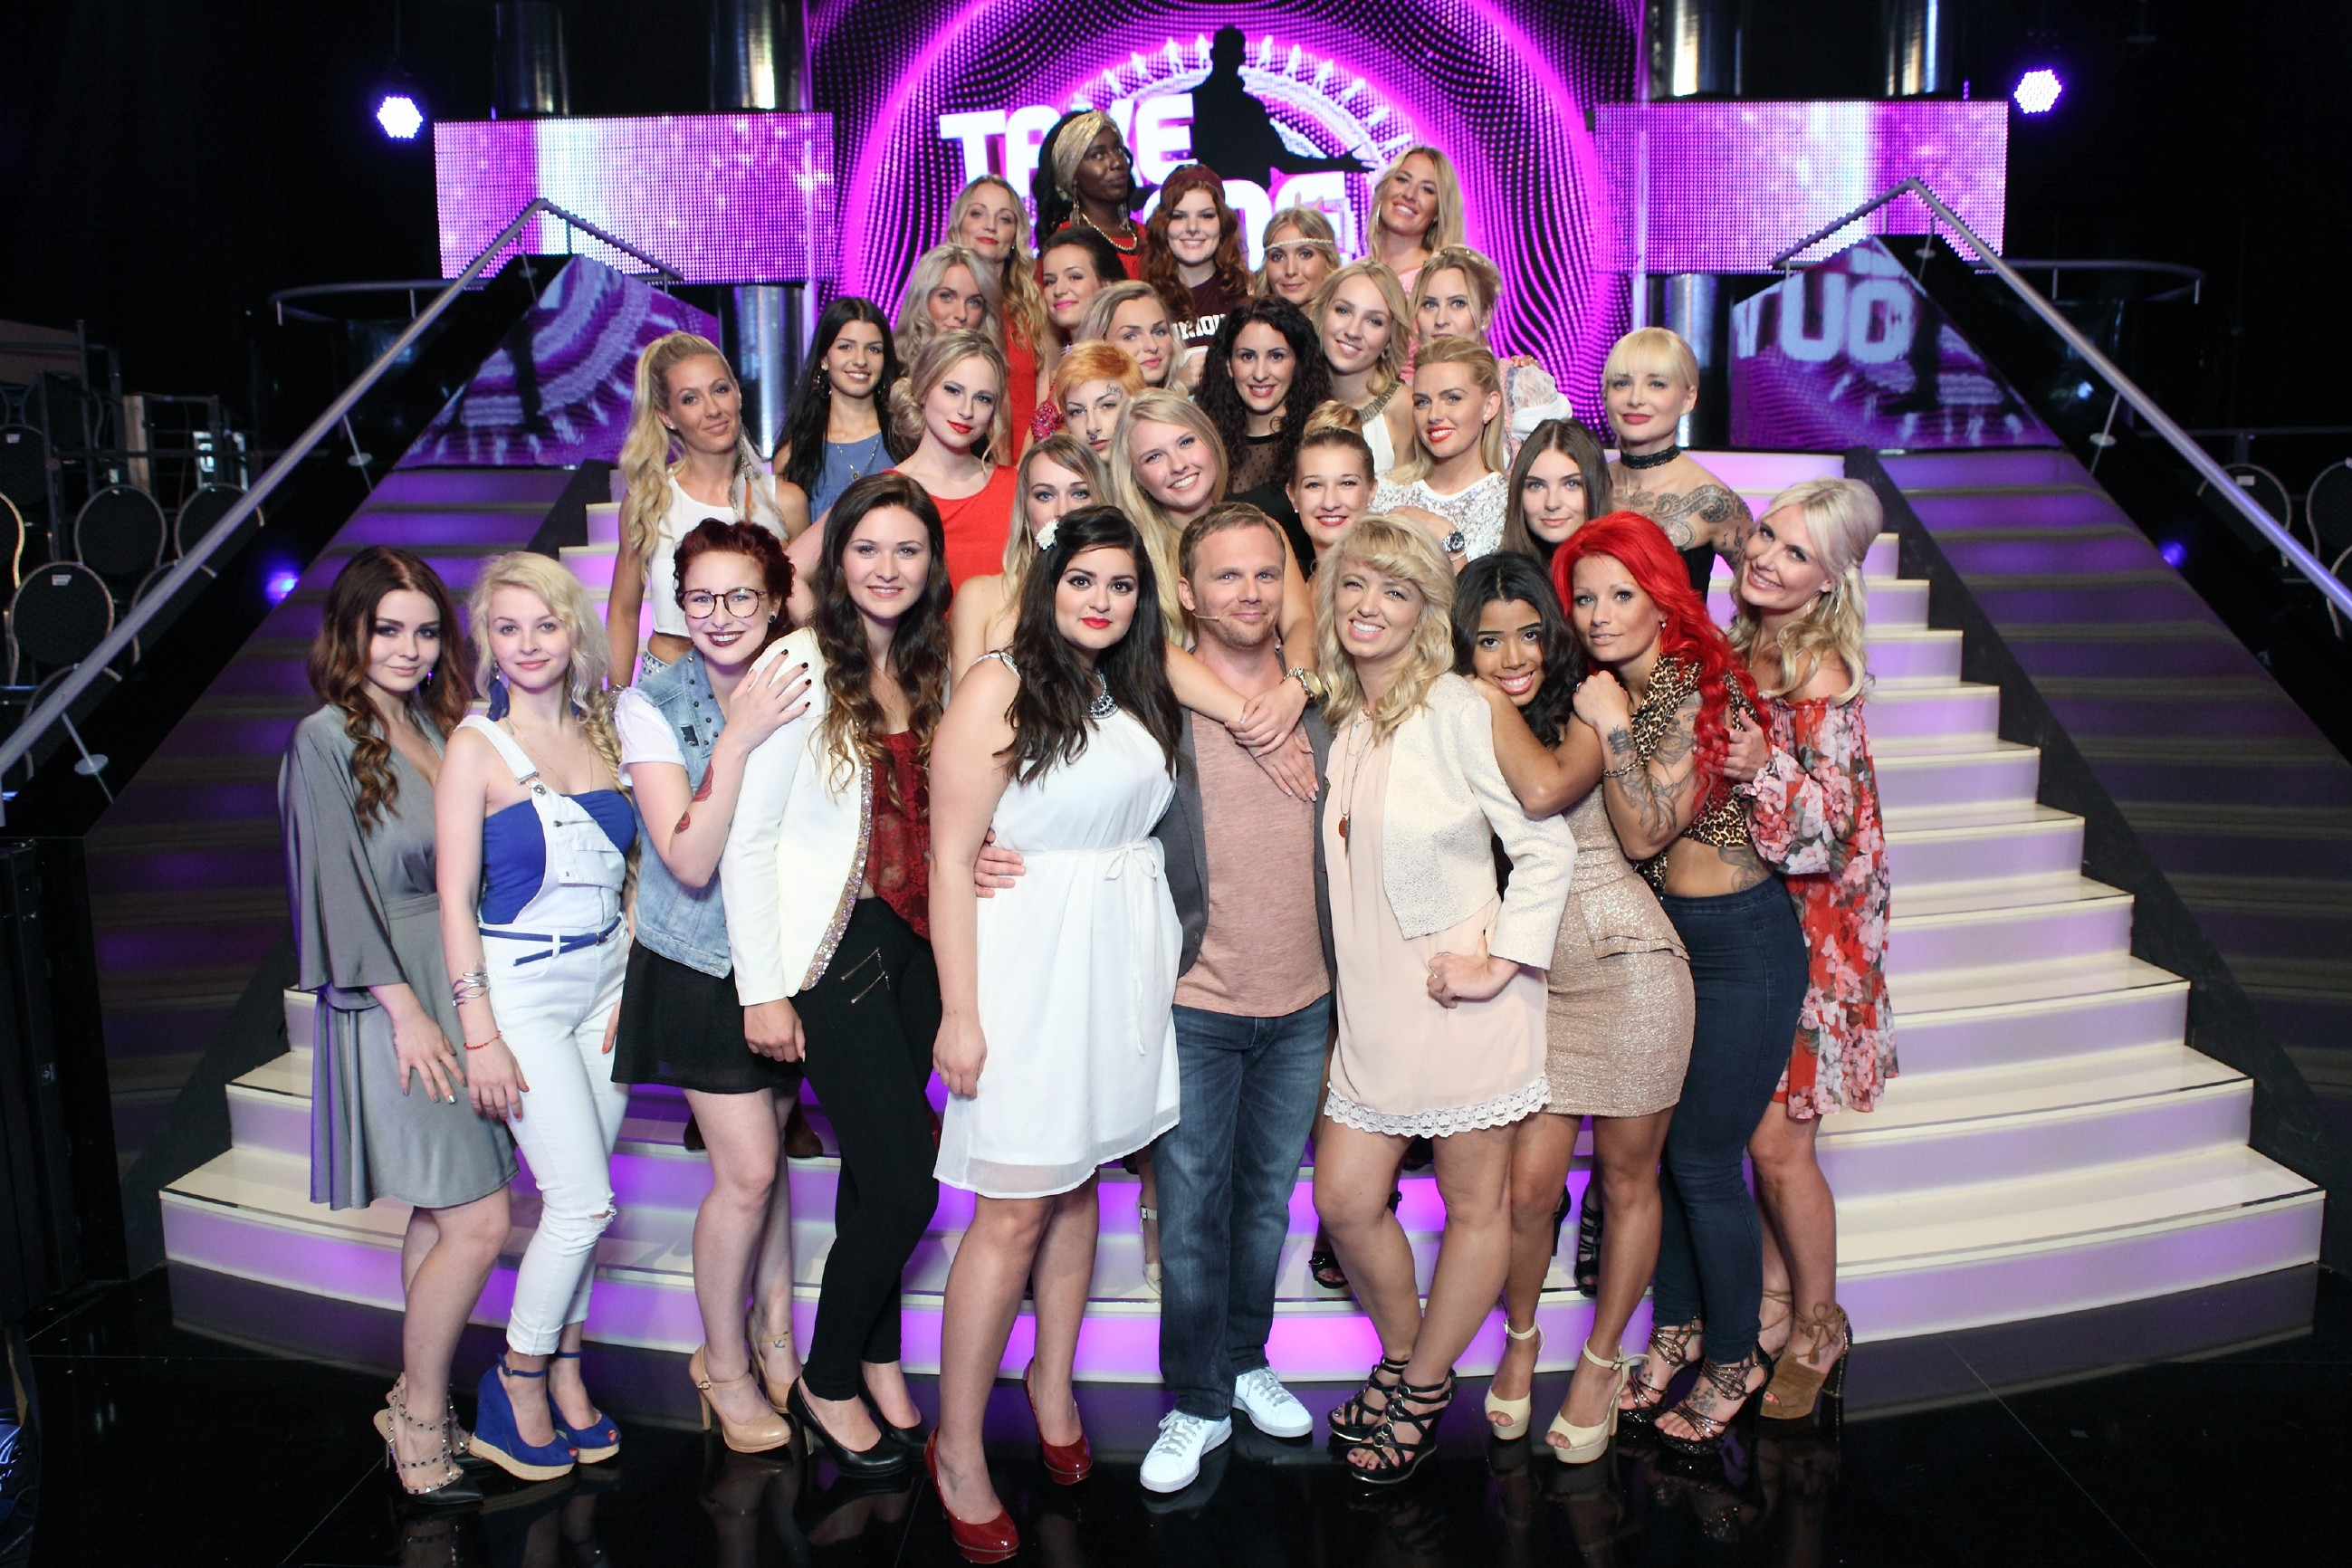 Take Me Out 2017 Folge 5 Heute Abend Bei Rtl 0403 Stars On Tv